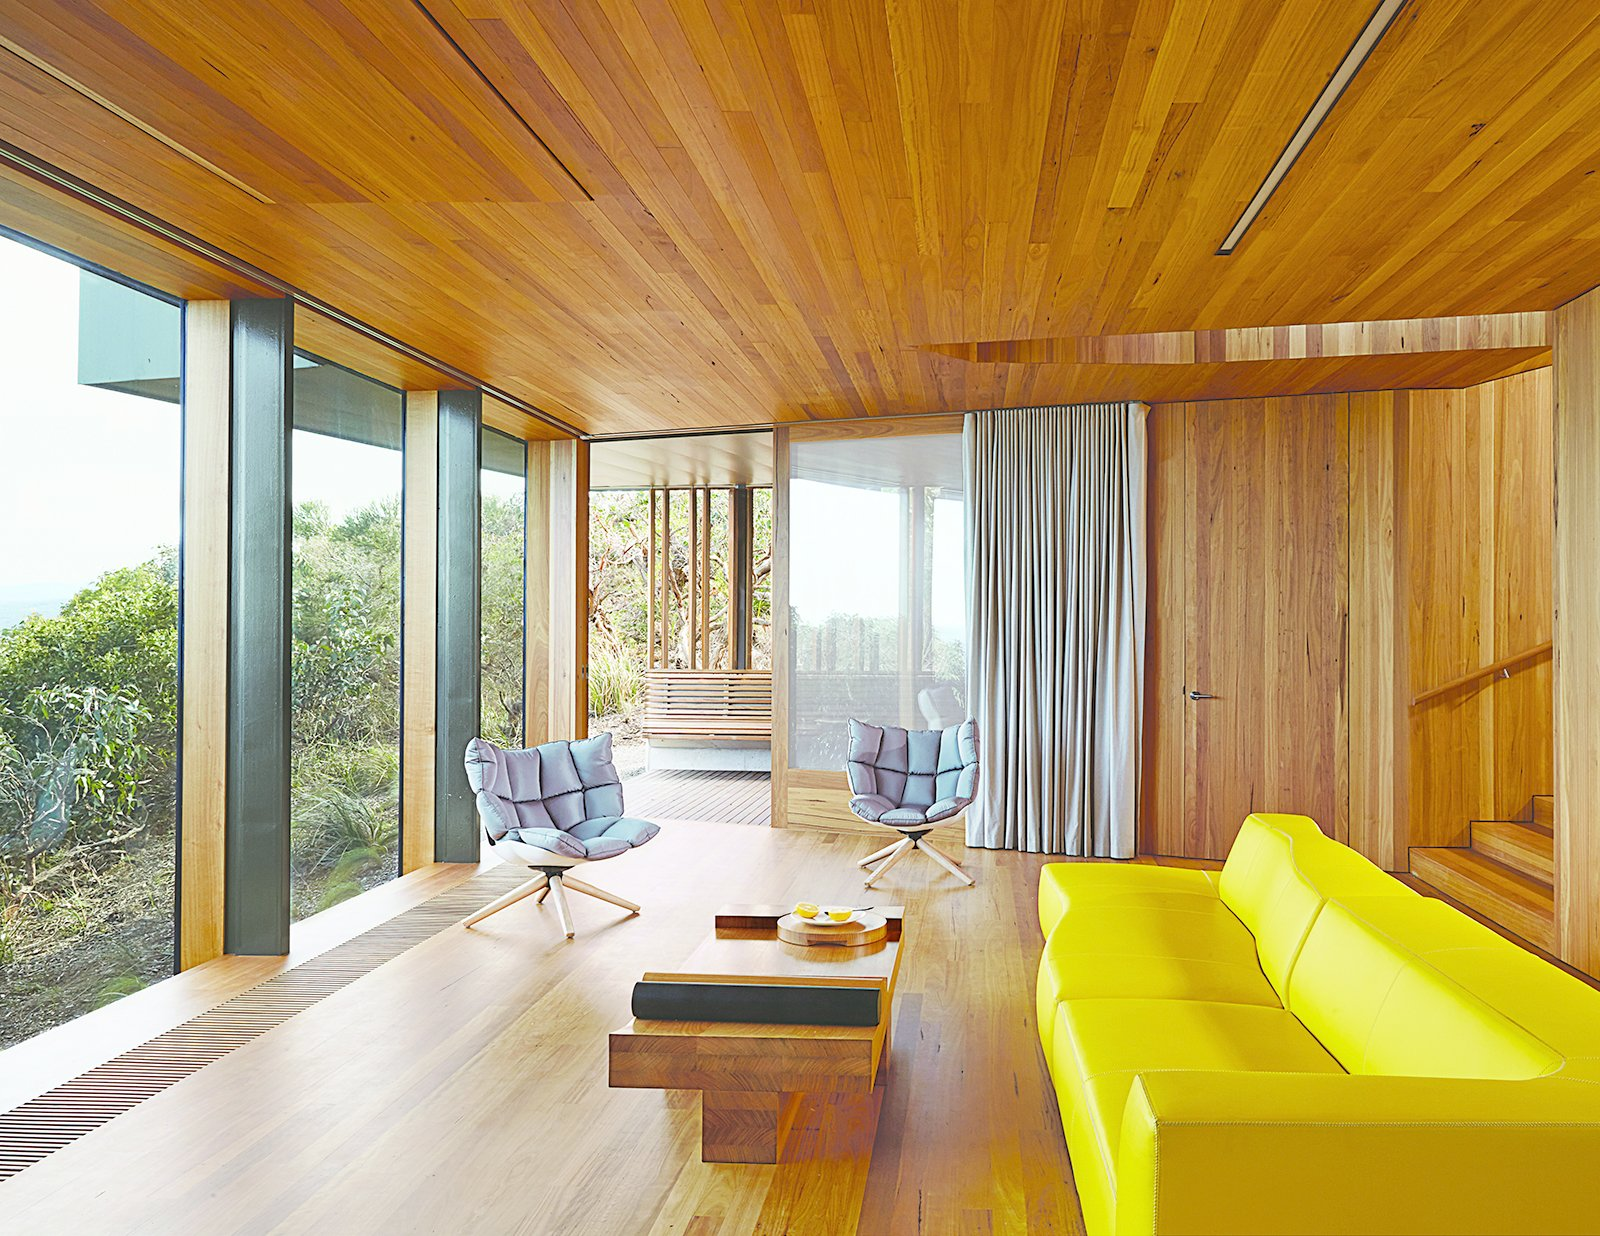 Refusing to fixate on the seascape at the expense of other views, Wardle oriented the living room to a lush grove of trees. A yellow Bend sofa and two Husk chairs, both by Patricia Urquiola for B&B Italia, add splashes of color.  Instances of Patricia Urquiola-Designed Pieces in Modern Homes by Zachary Edelson